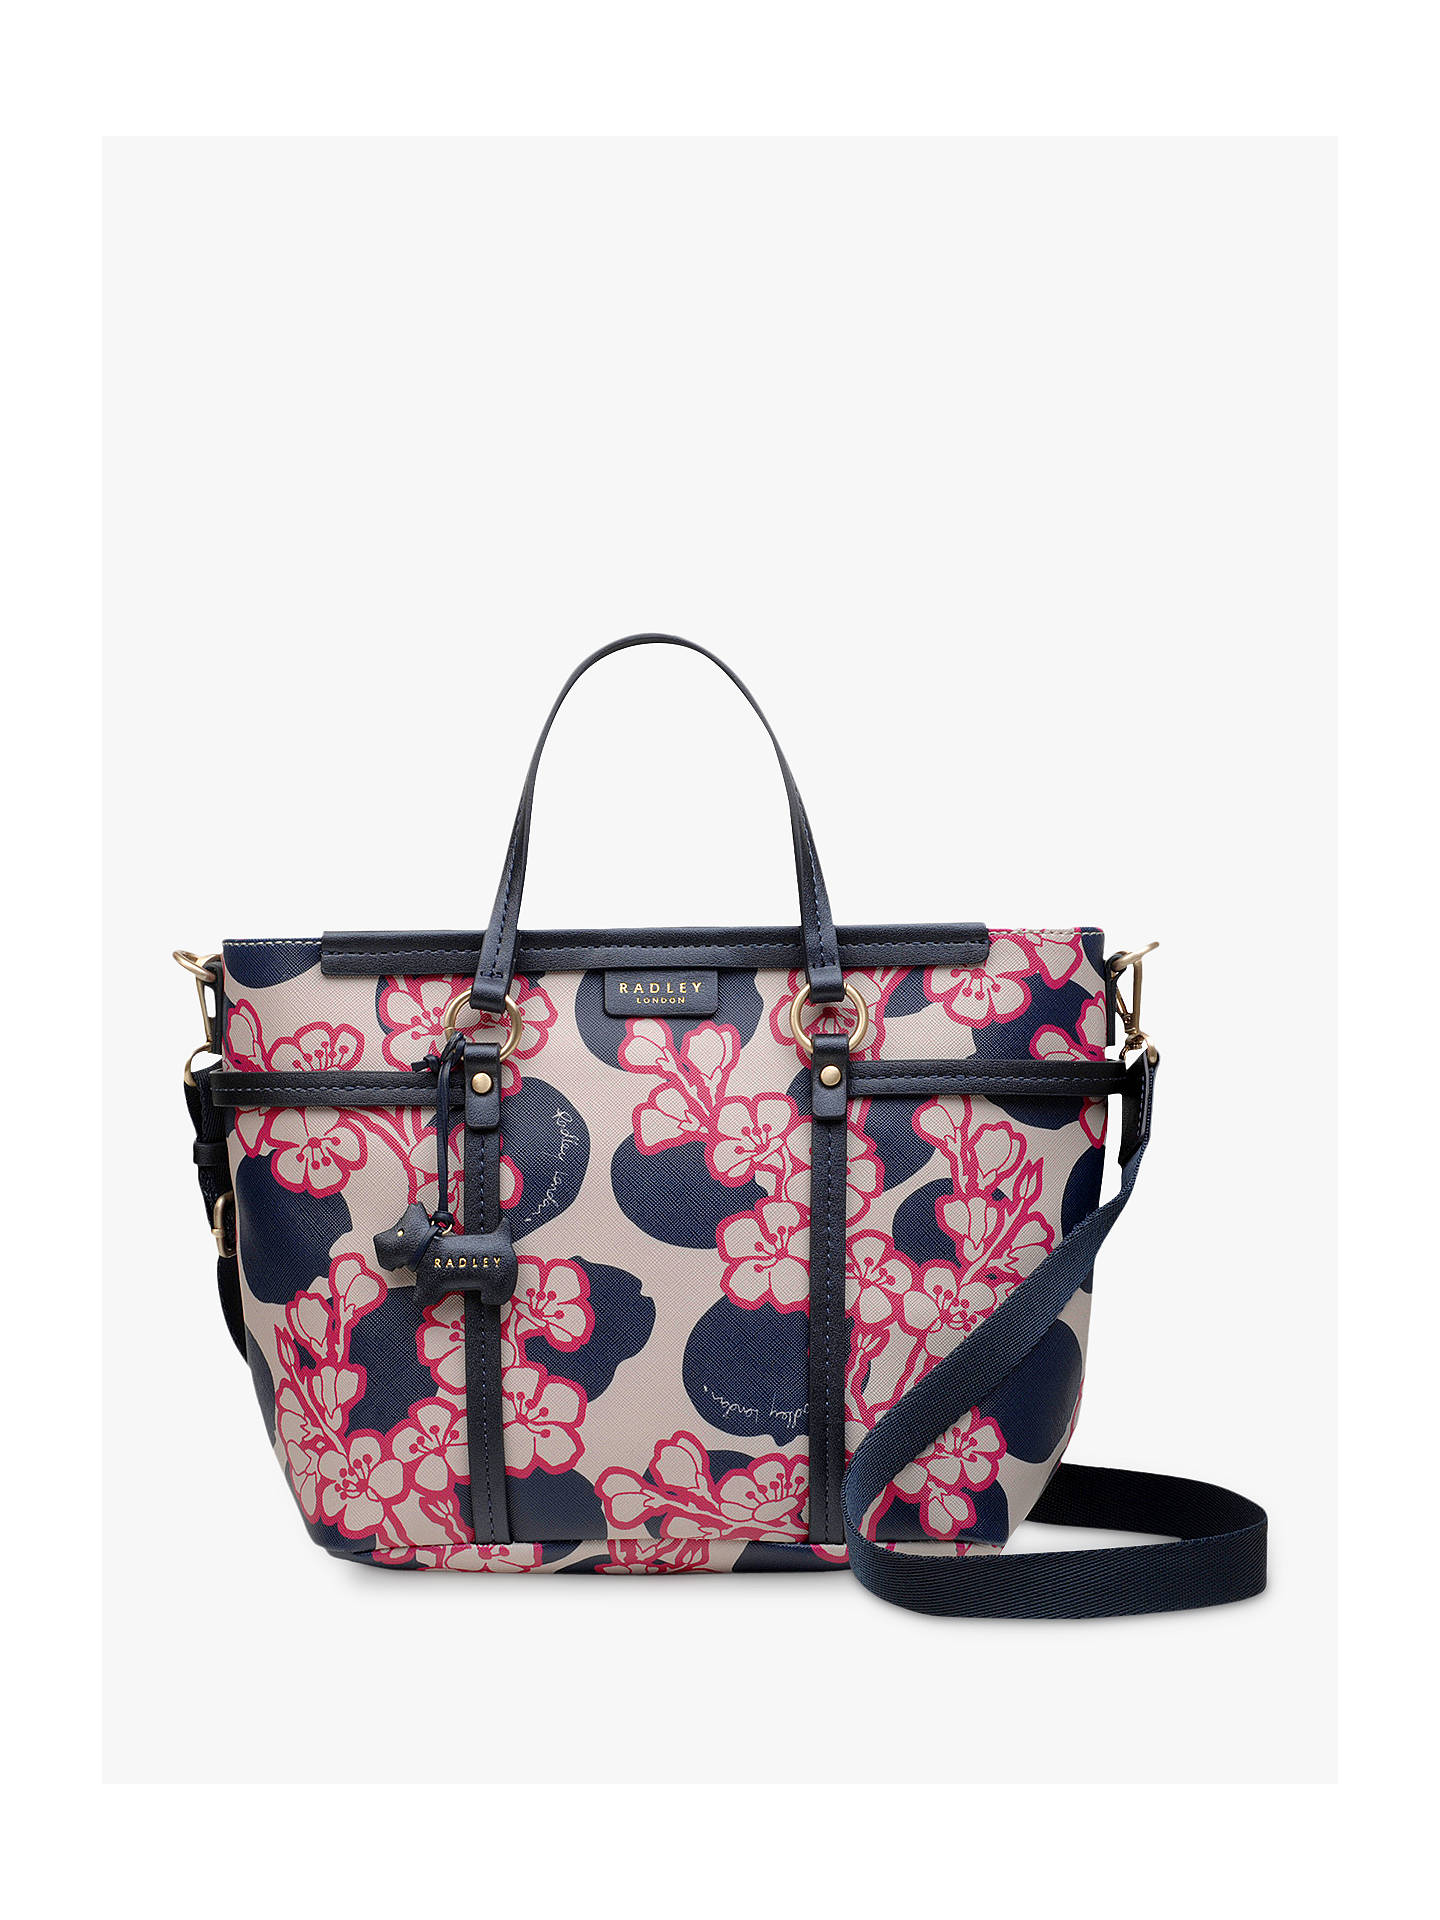 d704d7719b Buy Radley Blossom Spot Medium Multiway Grab Bag, Multi/Grey Online at  johnlewis.